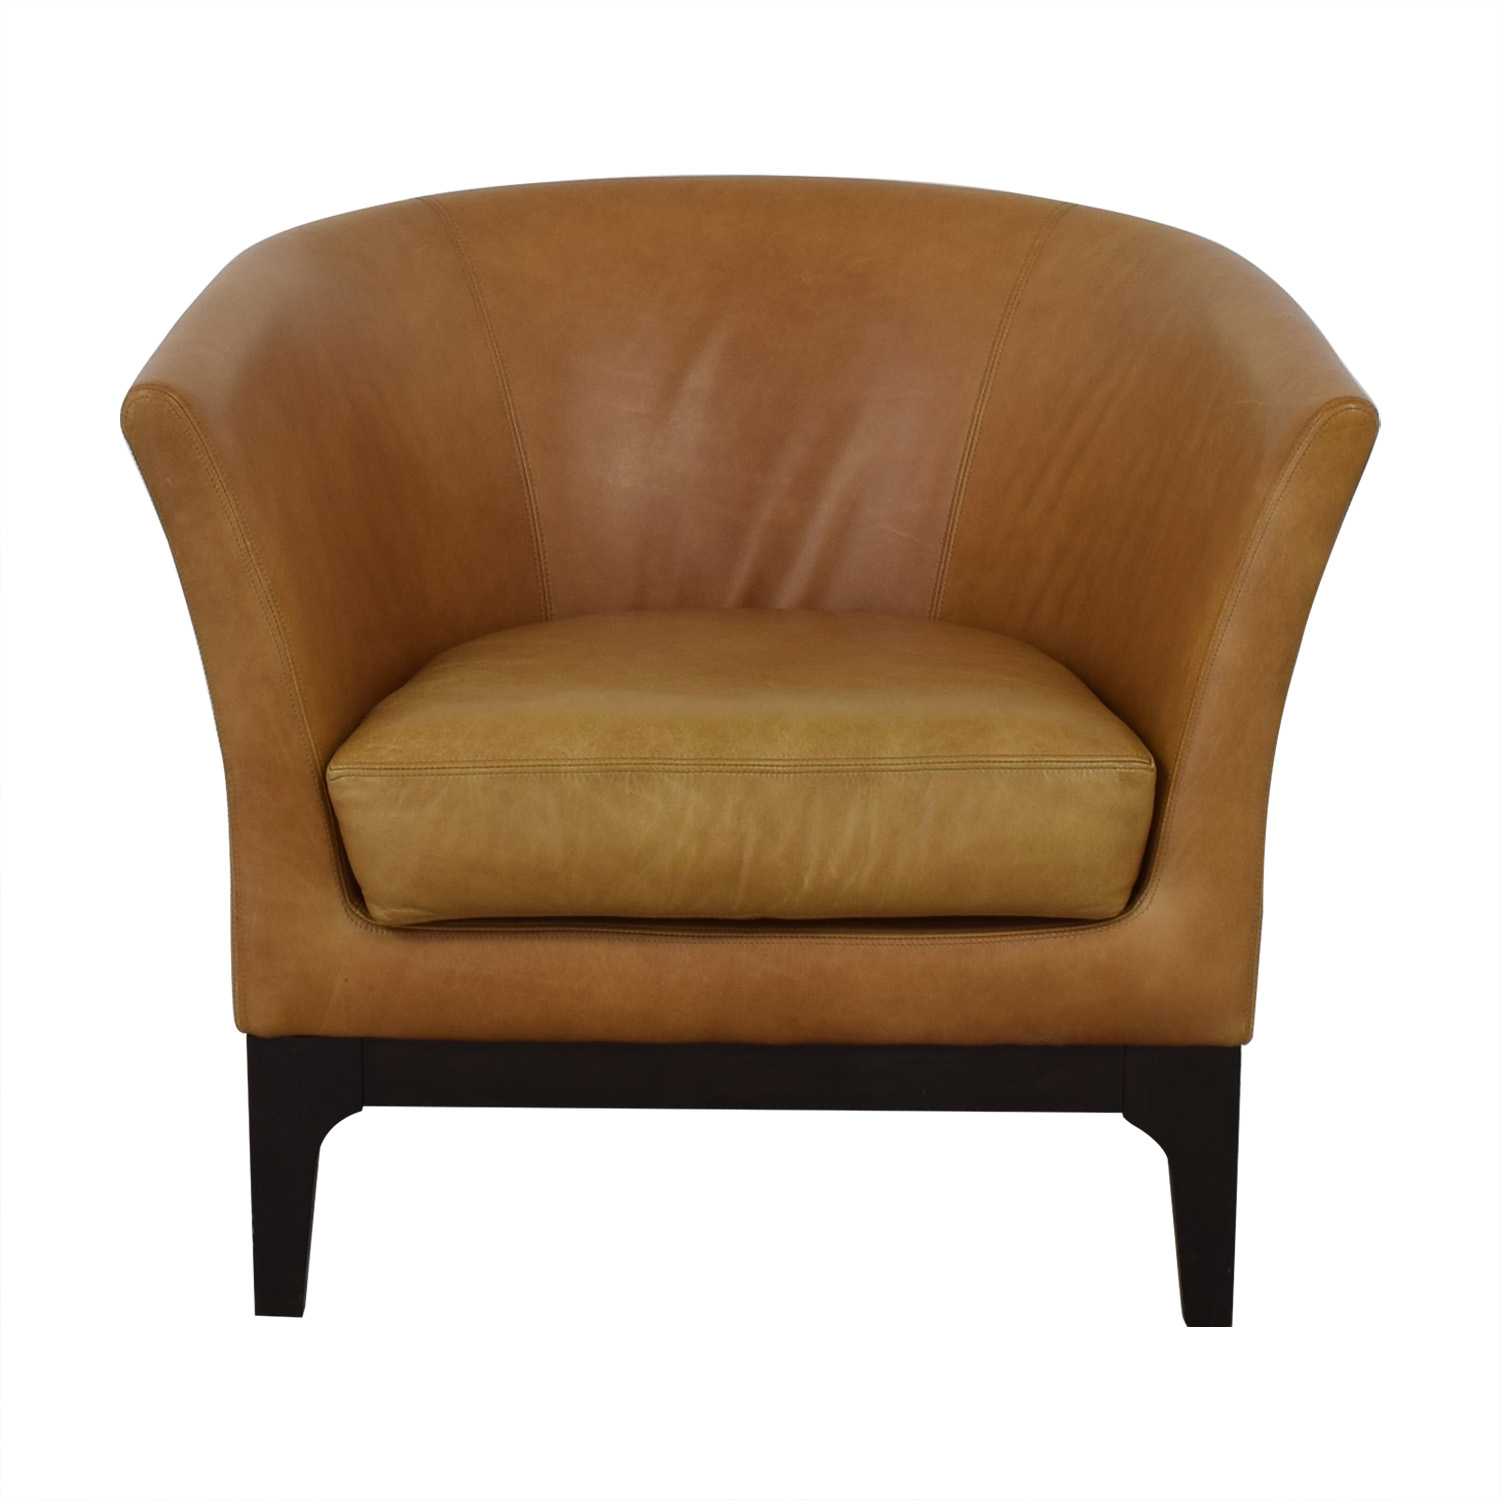 West Elm Tulip Chair / Chairs